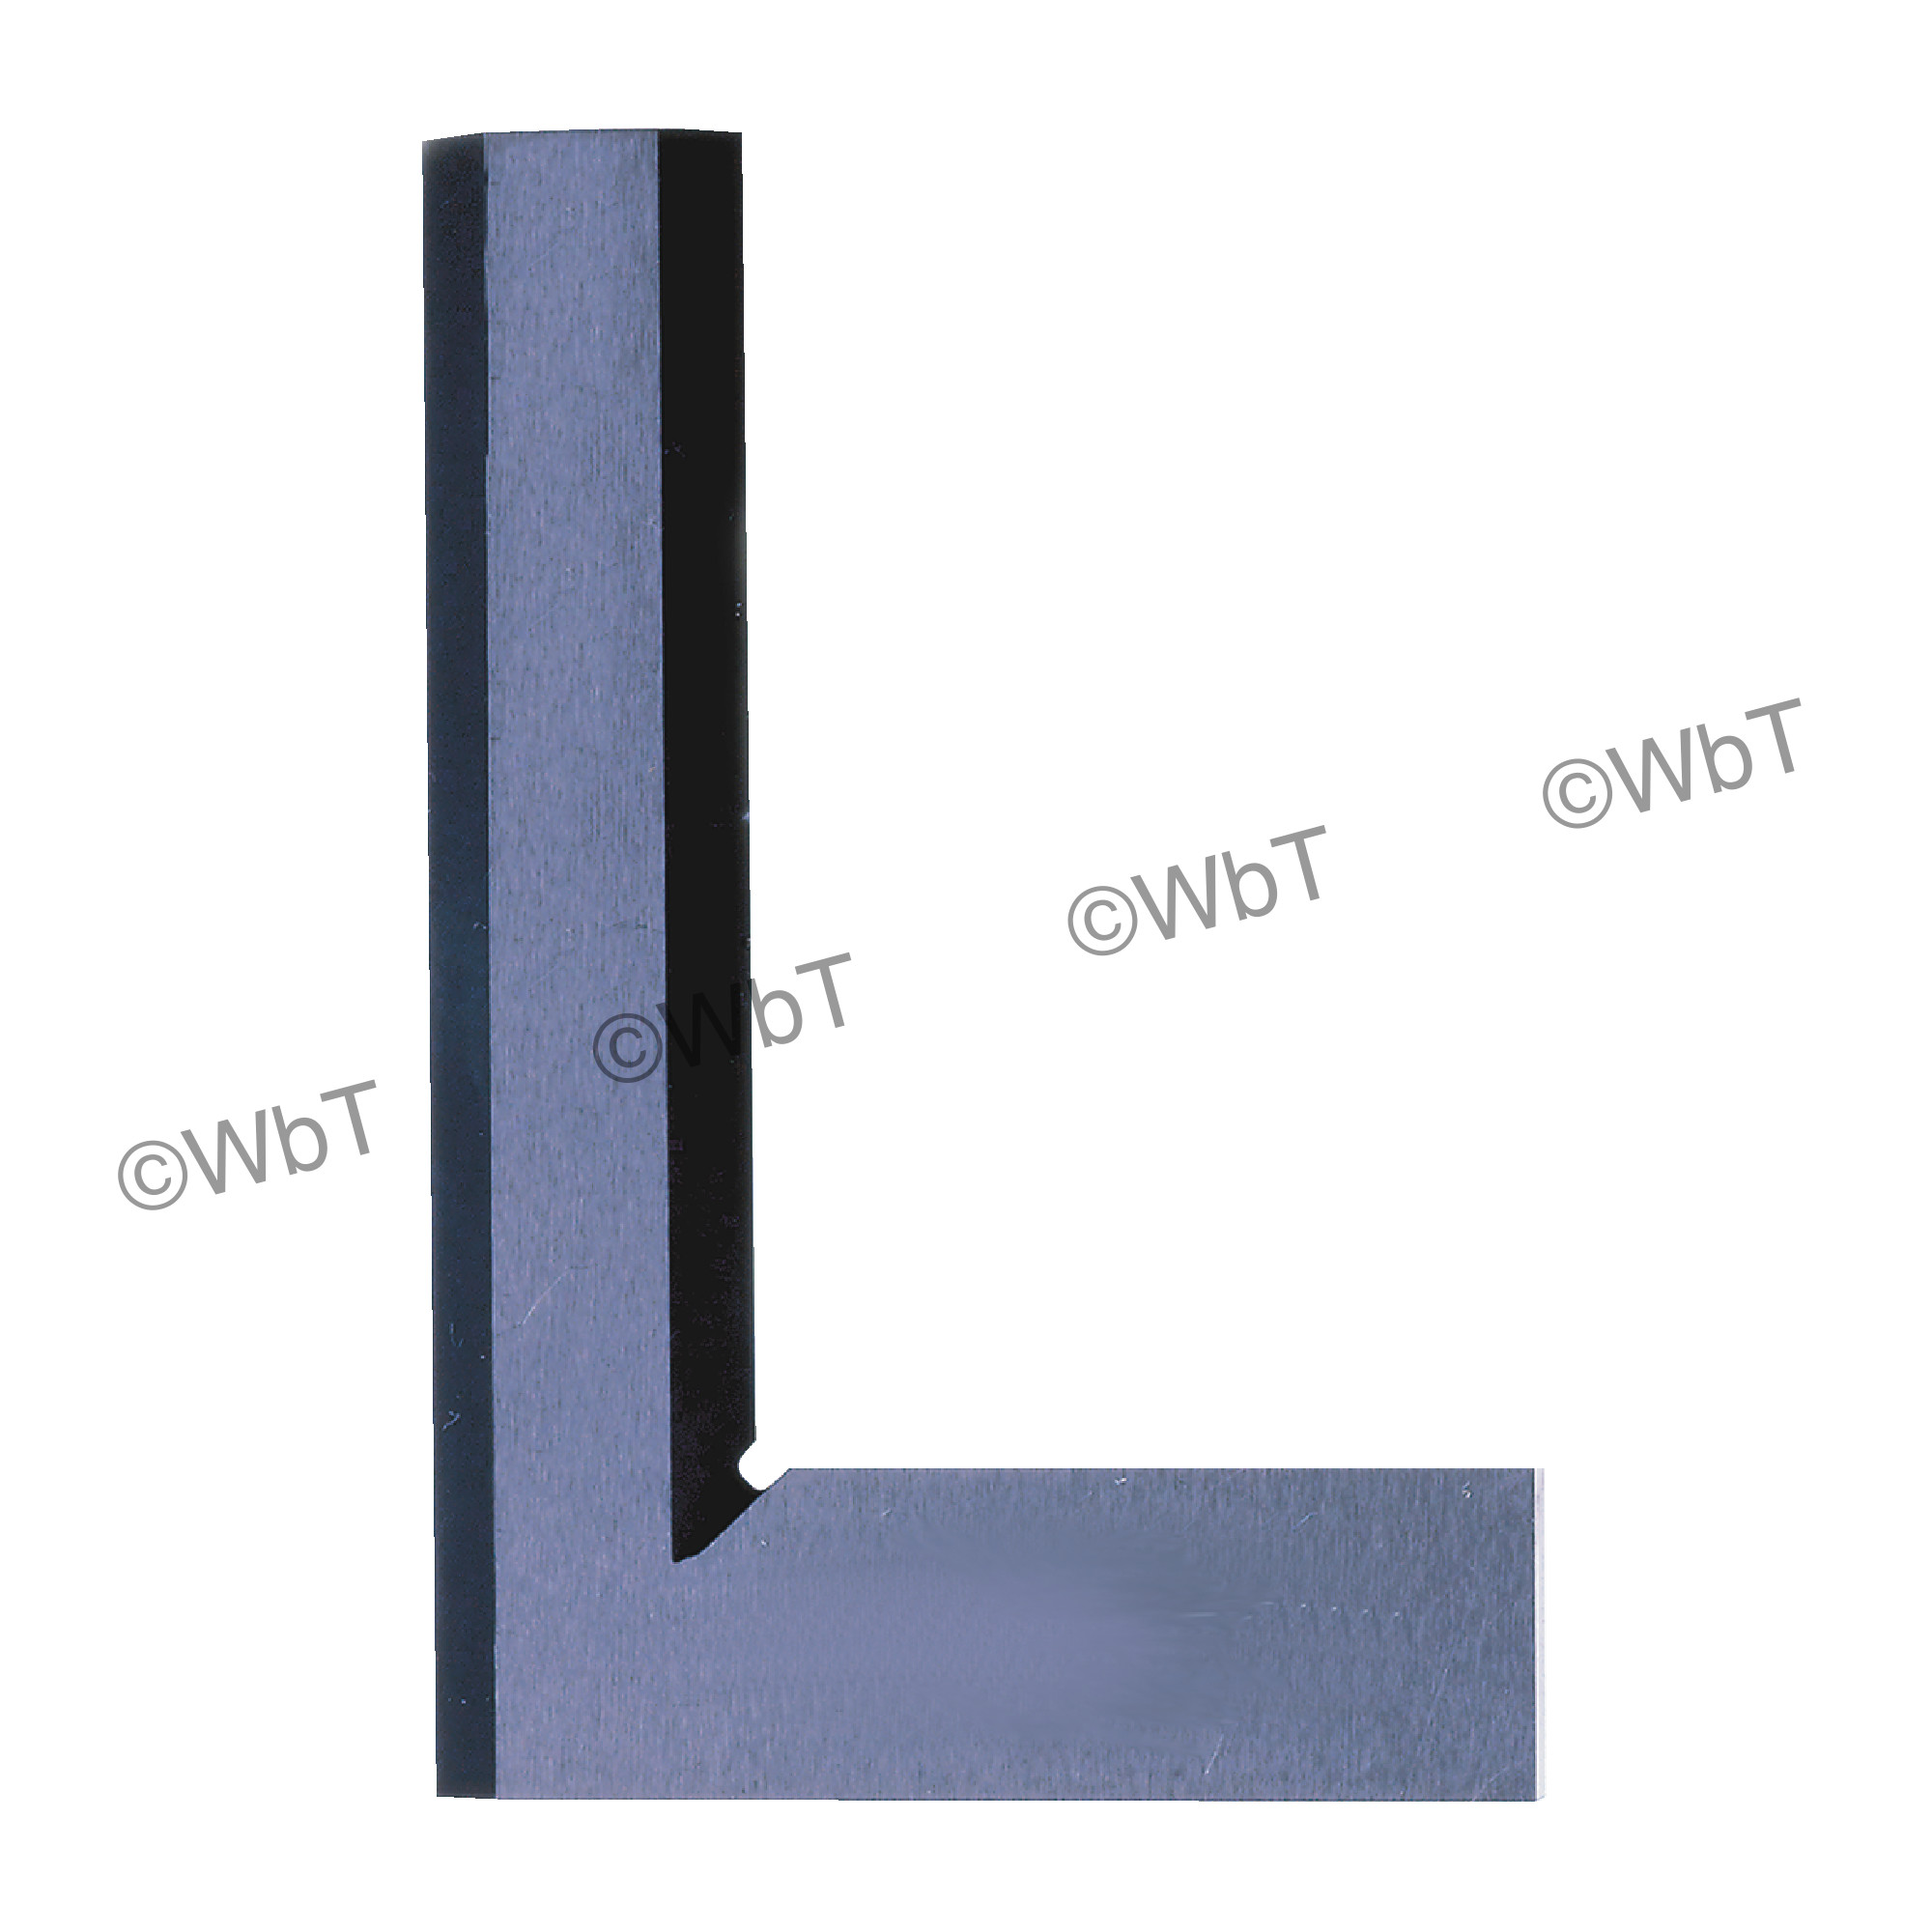 Hardened Precision Steel Square With Beveled Edges